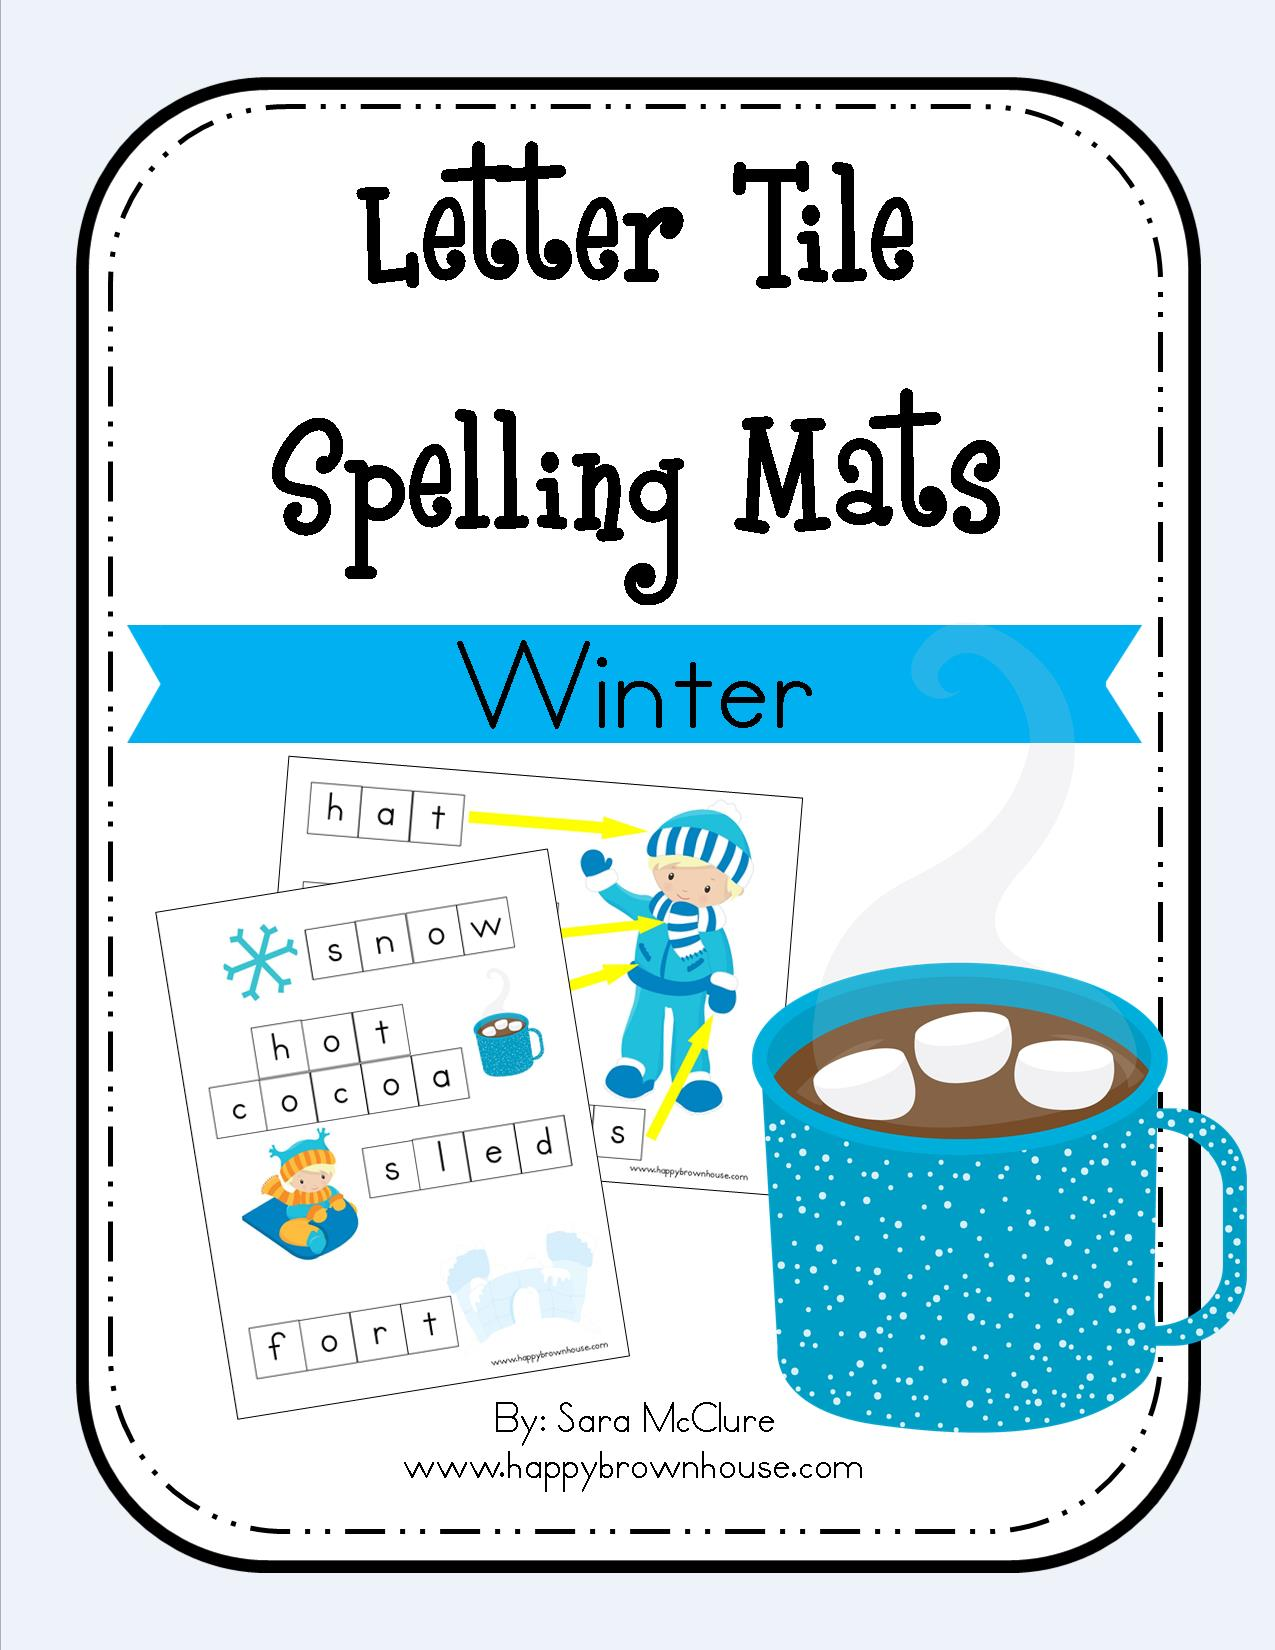 Winter Letter Tile Spelling Mat Free Printable